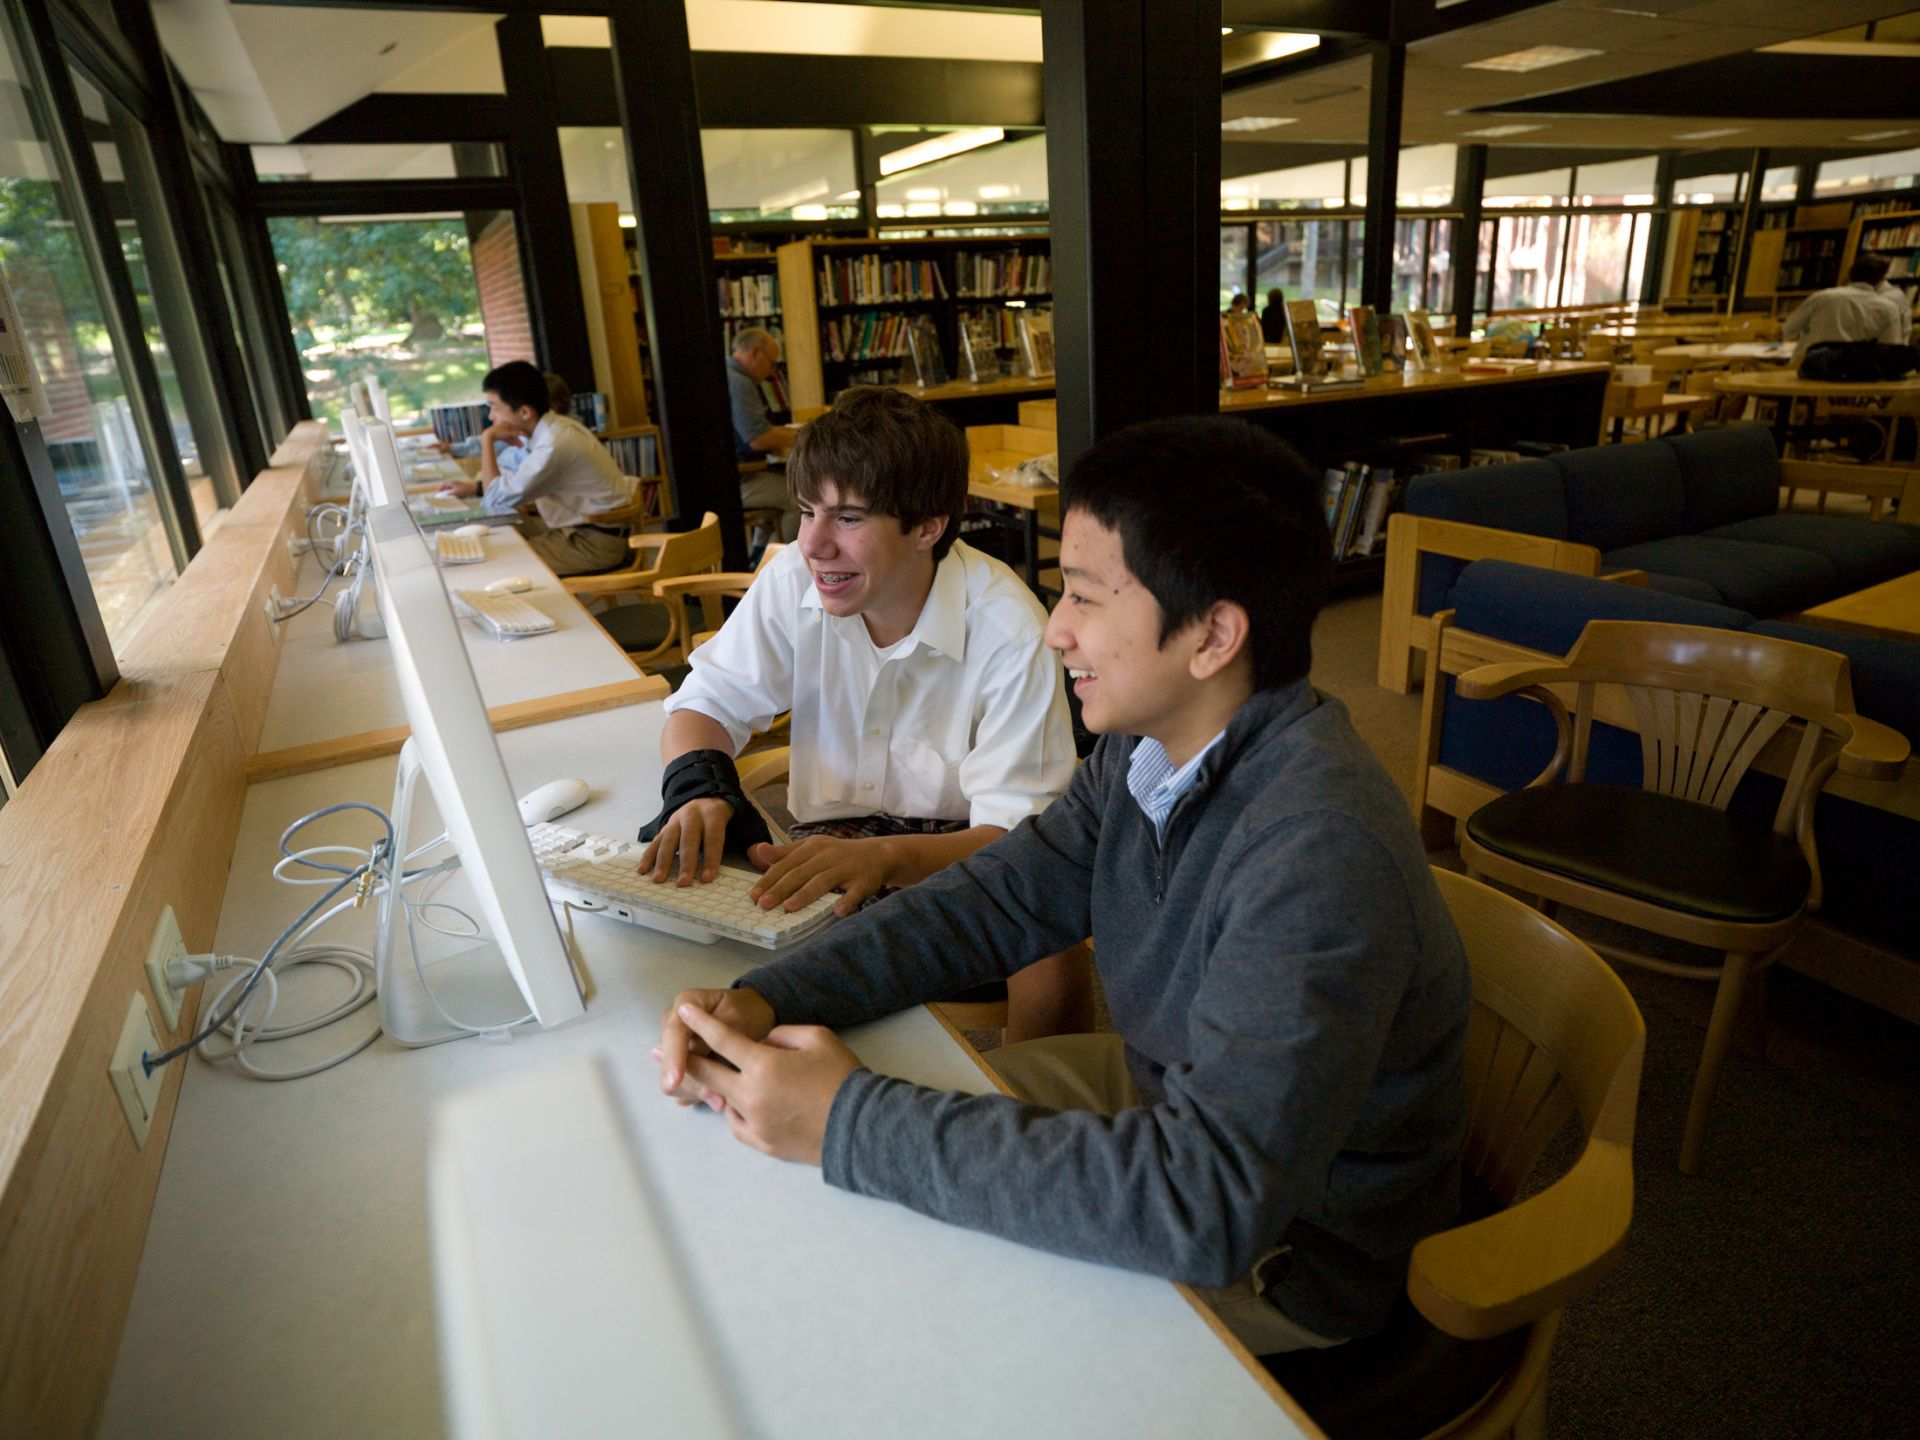 The James S. Copley Library contains 18,000 volumes, Internet access, five hundred books on tapes, 125 periodicals, newspapers, printers and a copier. Boys use the library for study, research, projects and reading for pleasure.